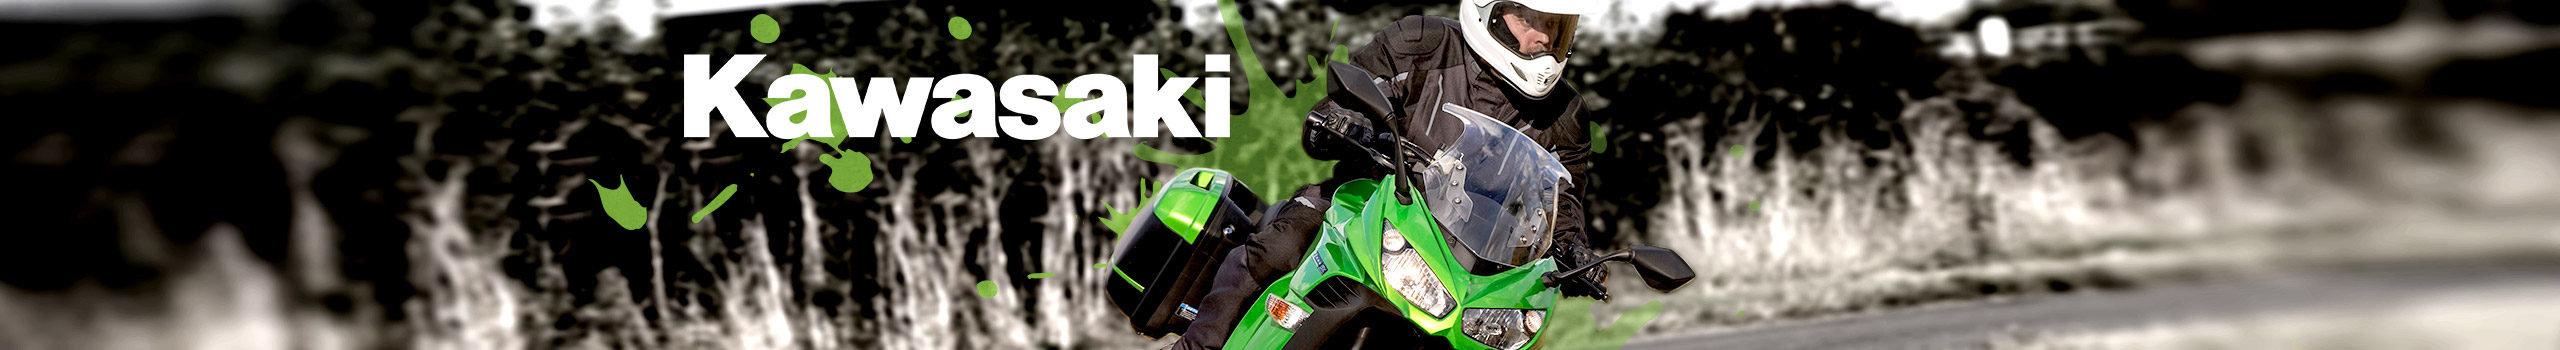 Motorcycles hero image for Kawasaki